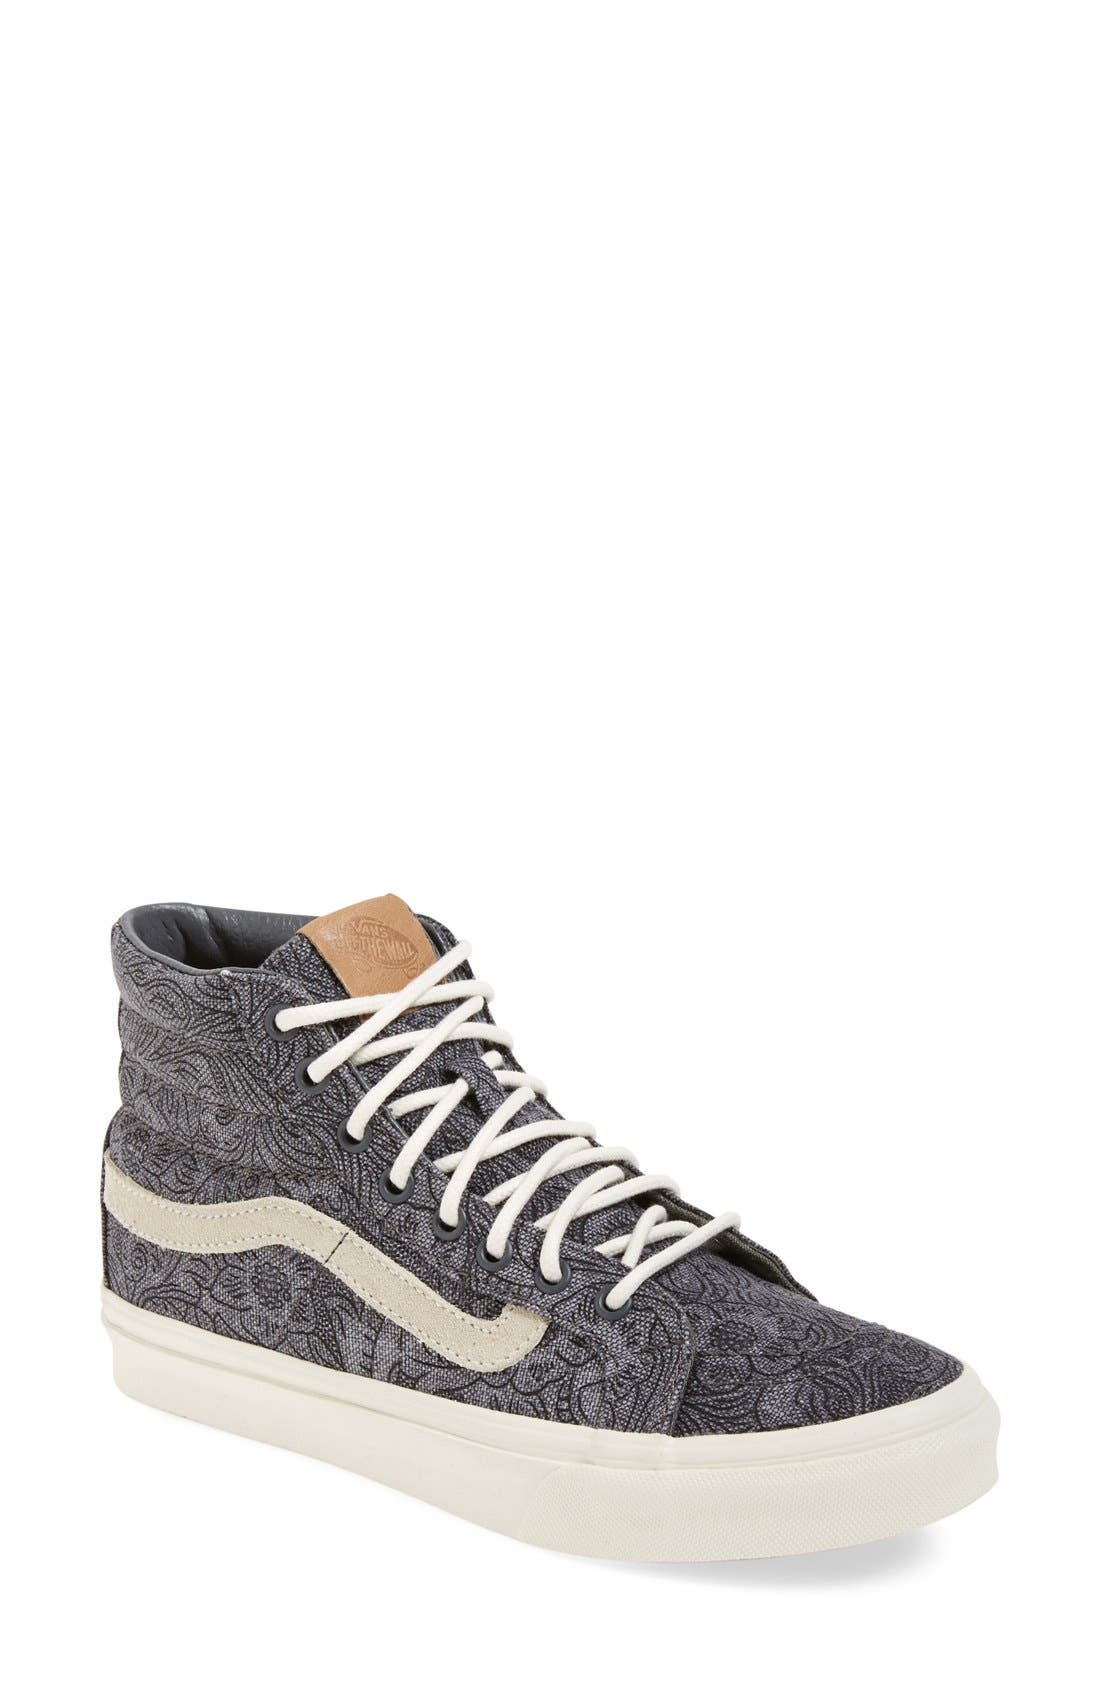 Alternate Image 1 Selected - Vans 'Sk8-Hi Slim' Sneaker (Women)